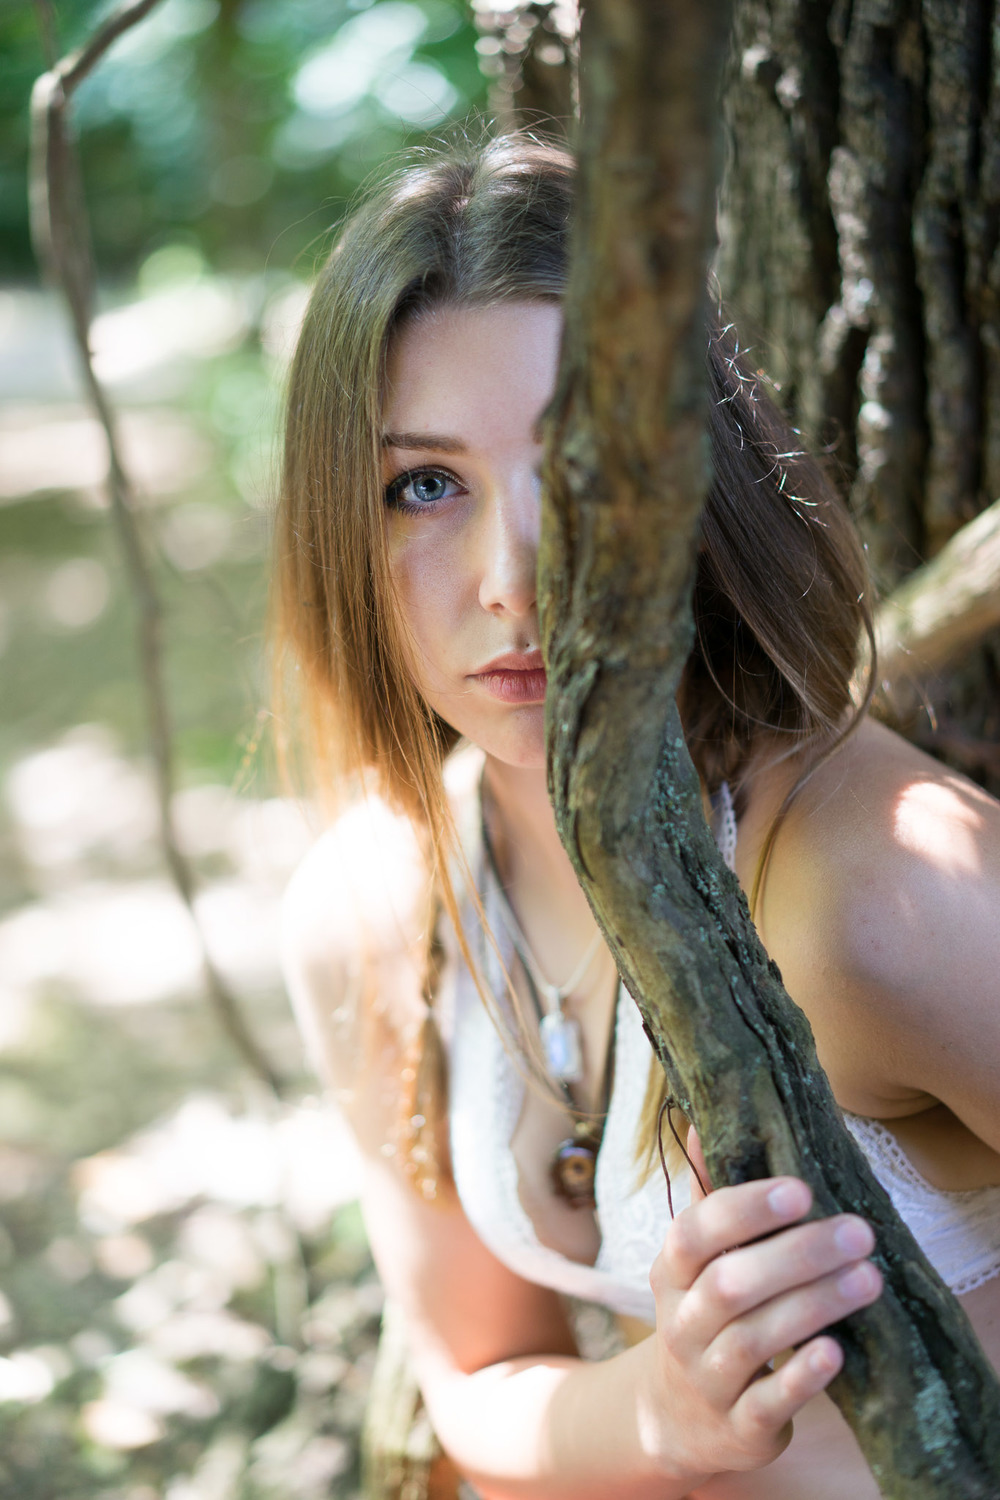 Model: Mackenzie Wolcott  Camera used: Sony A7   Lens: Sonnar T* FE 55mm F1.8